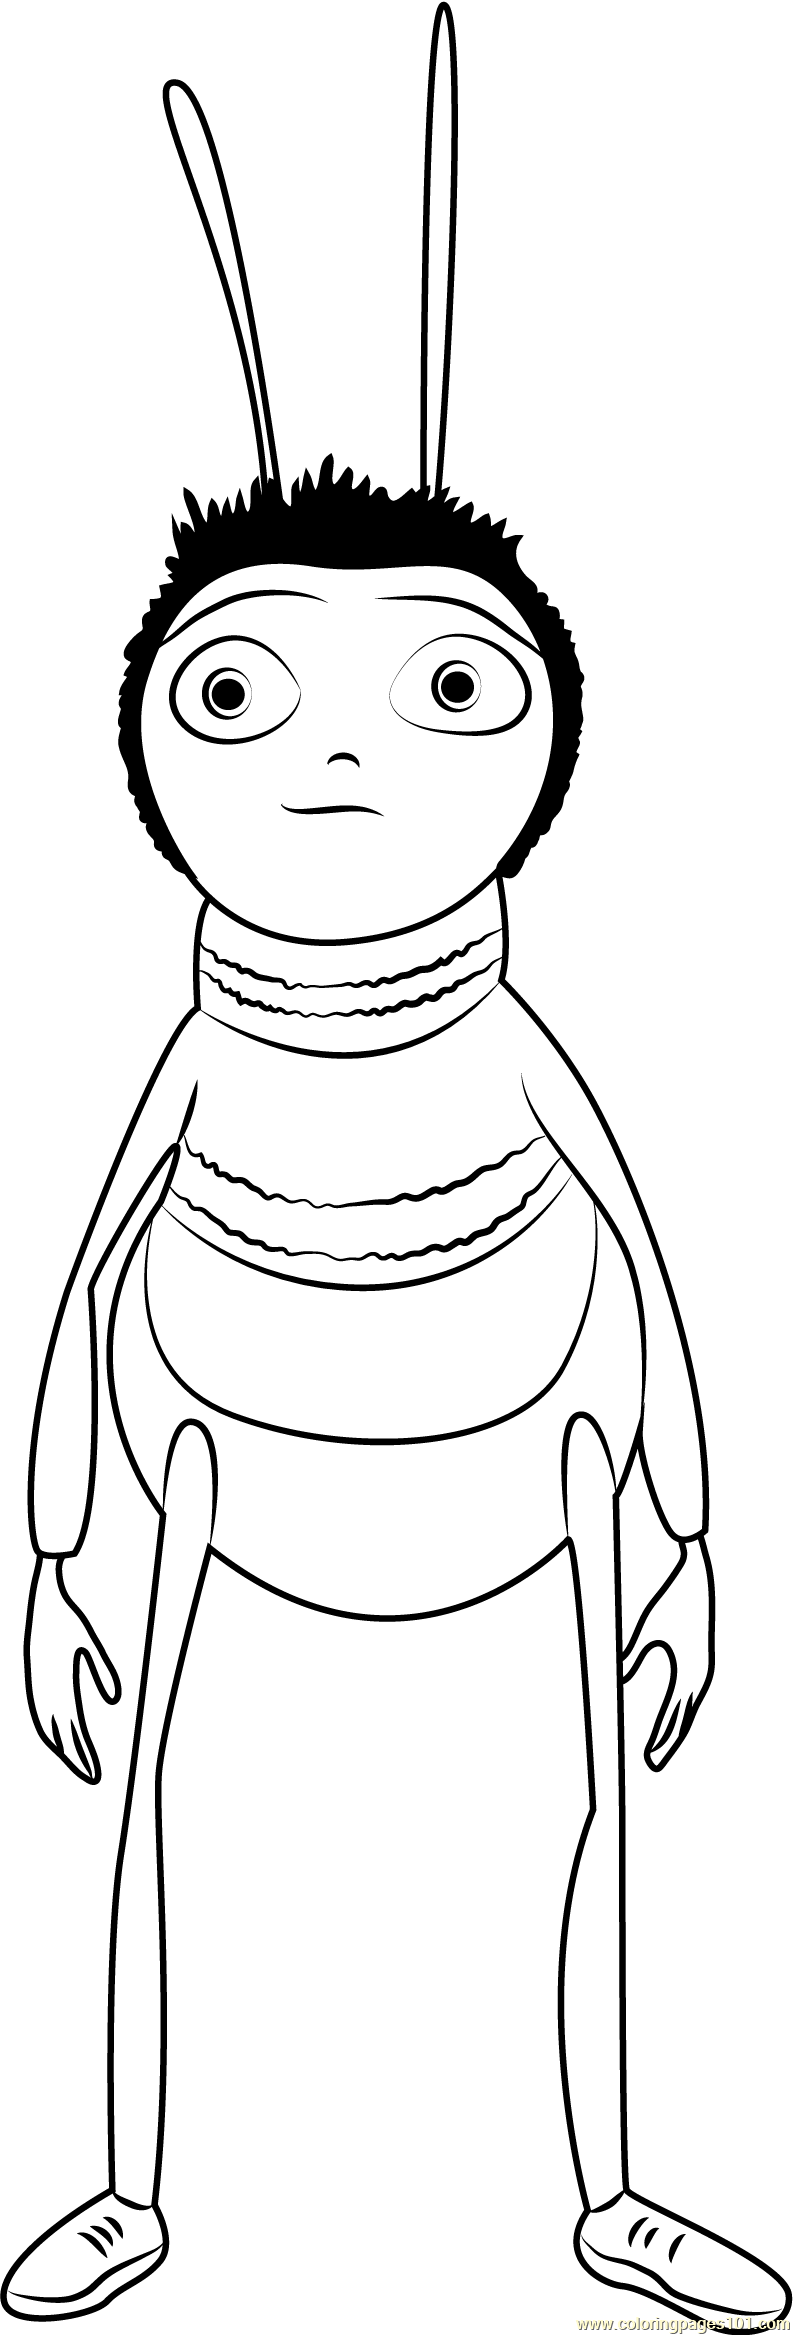 Bee Standing Coloring Page Free